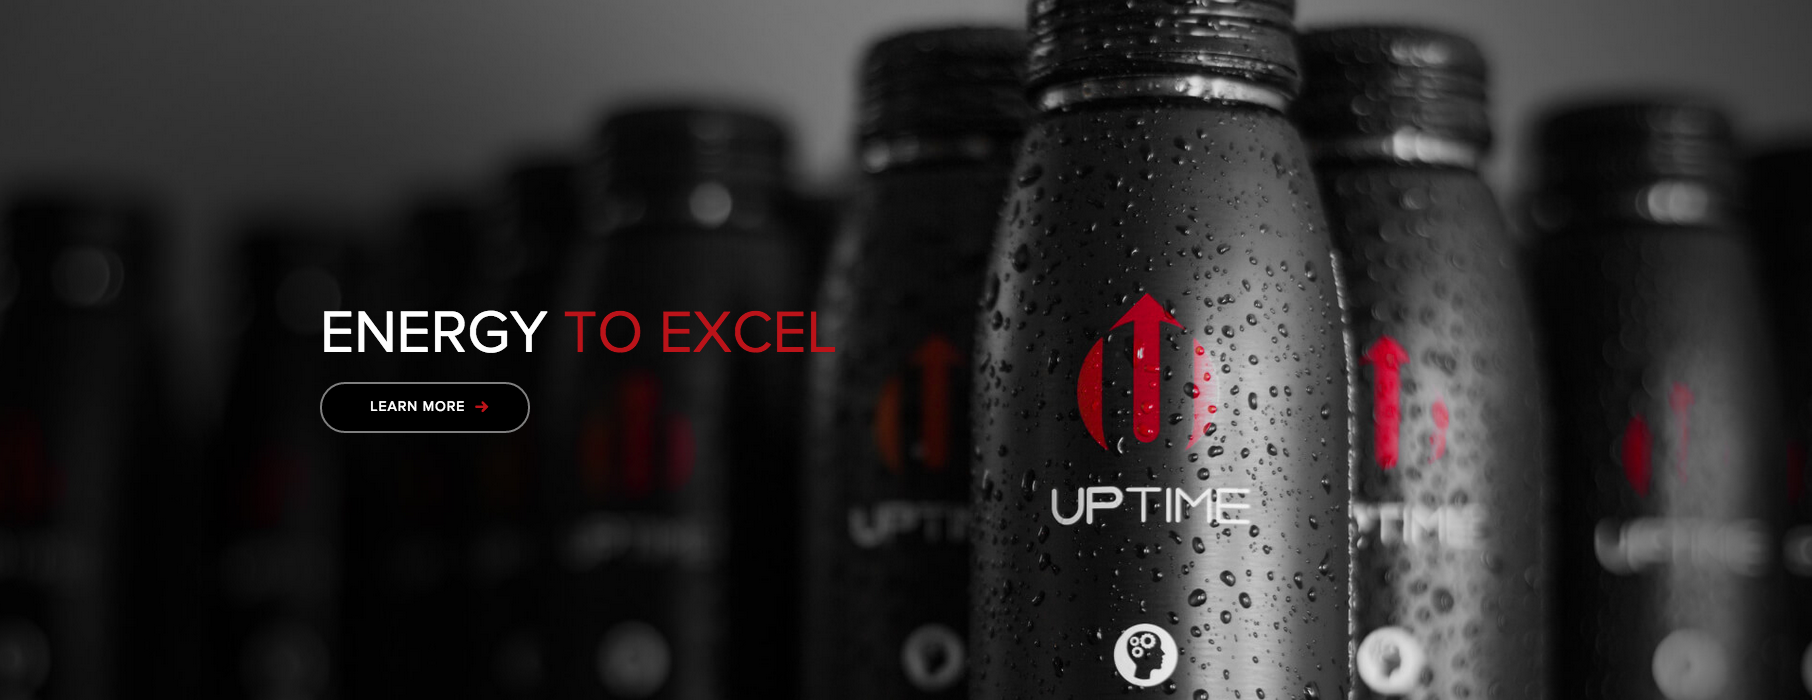 Uptime Energy to Excel